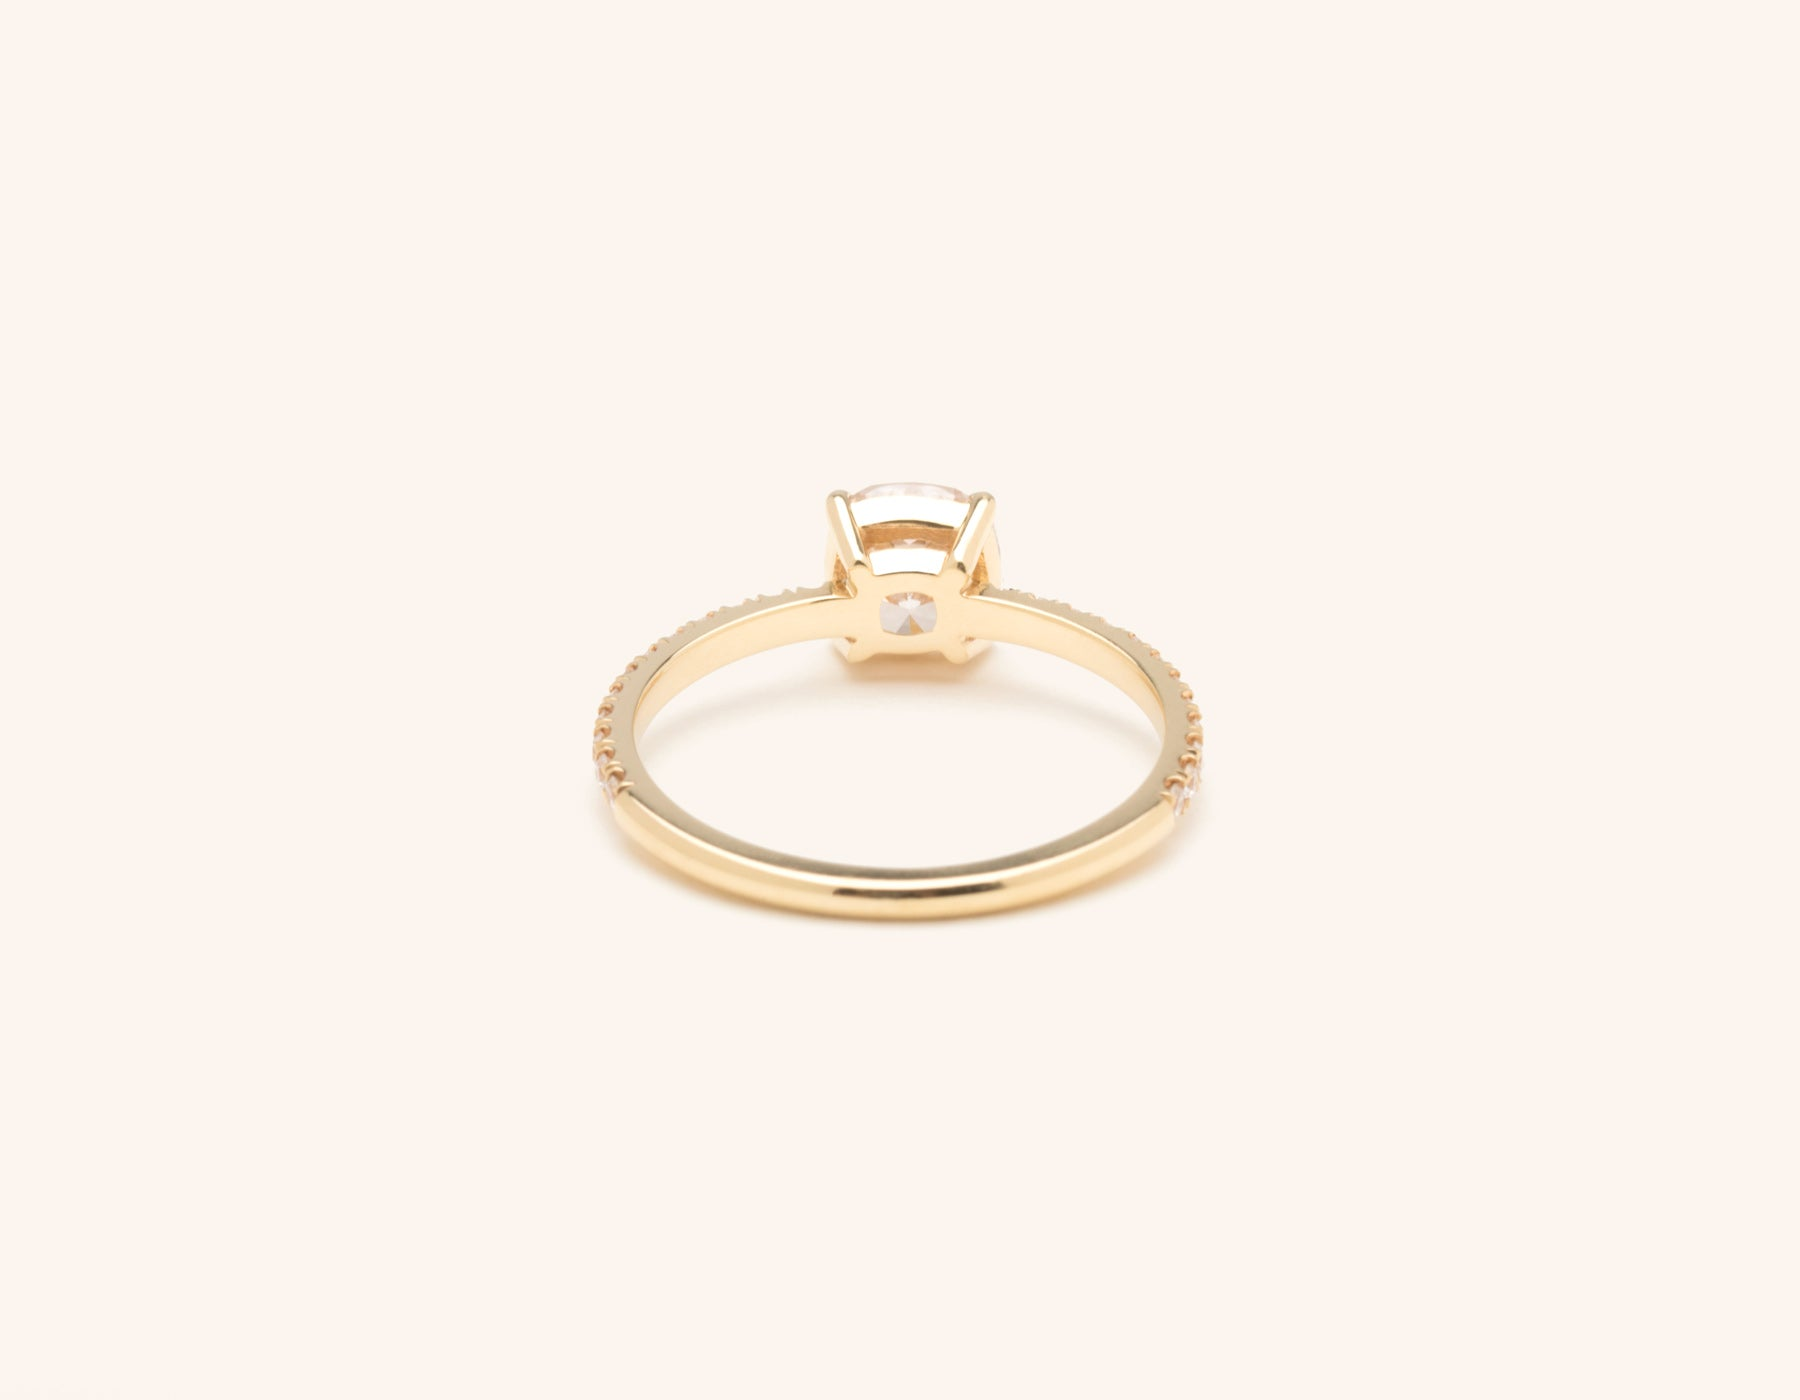 Vrai & Oro 18k solid yellow gold Diamond engagement ring The Cushion pave simple classic band